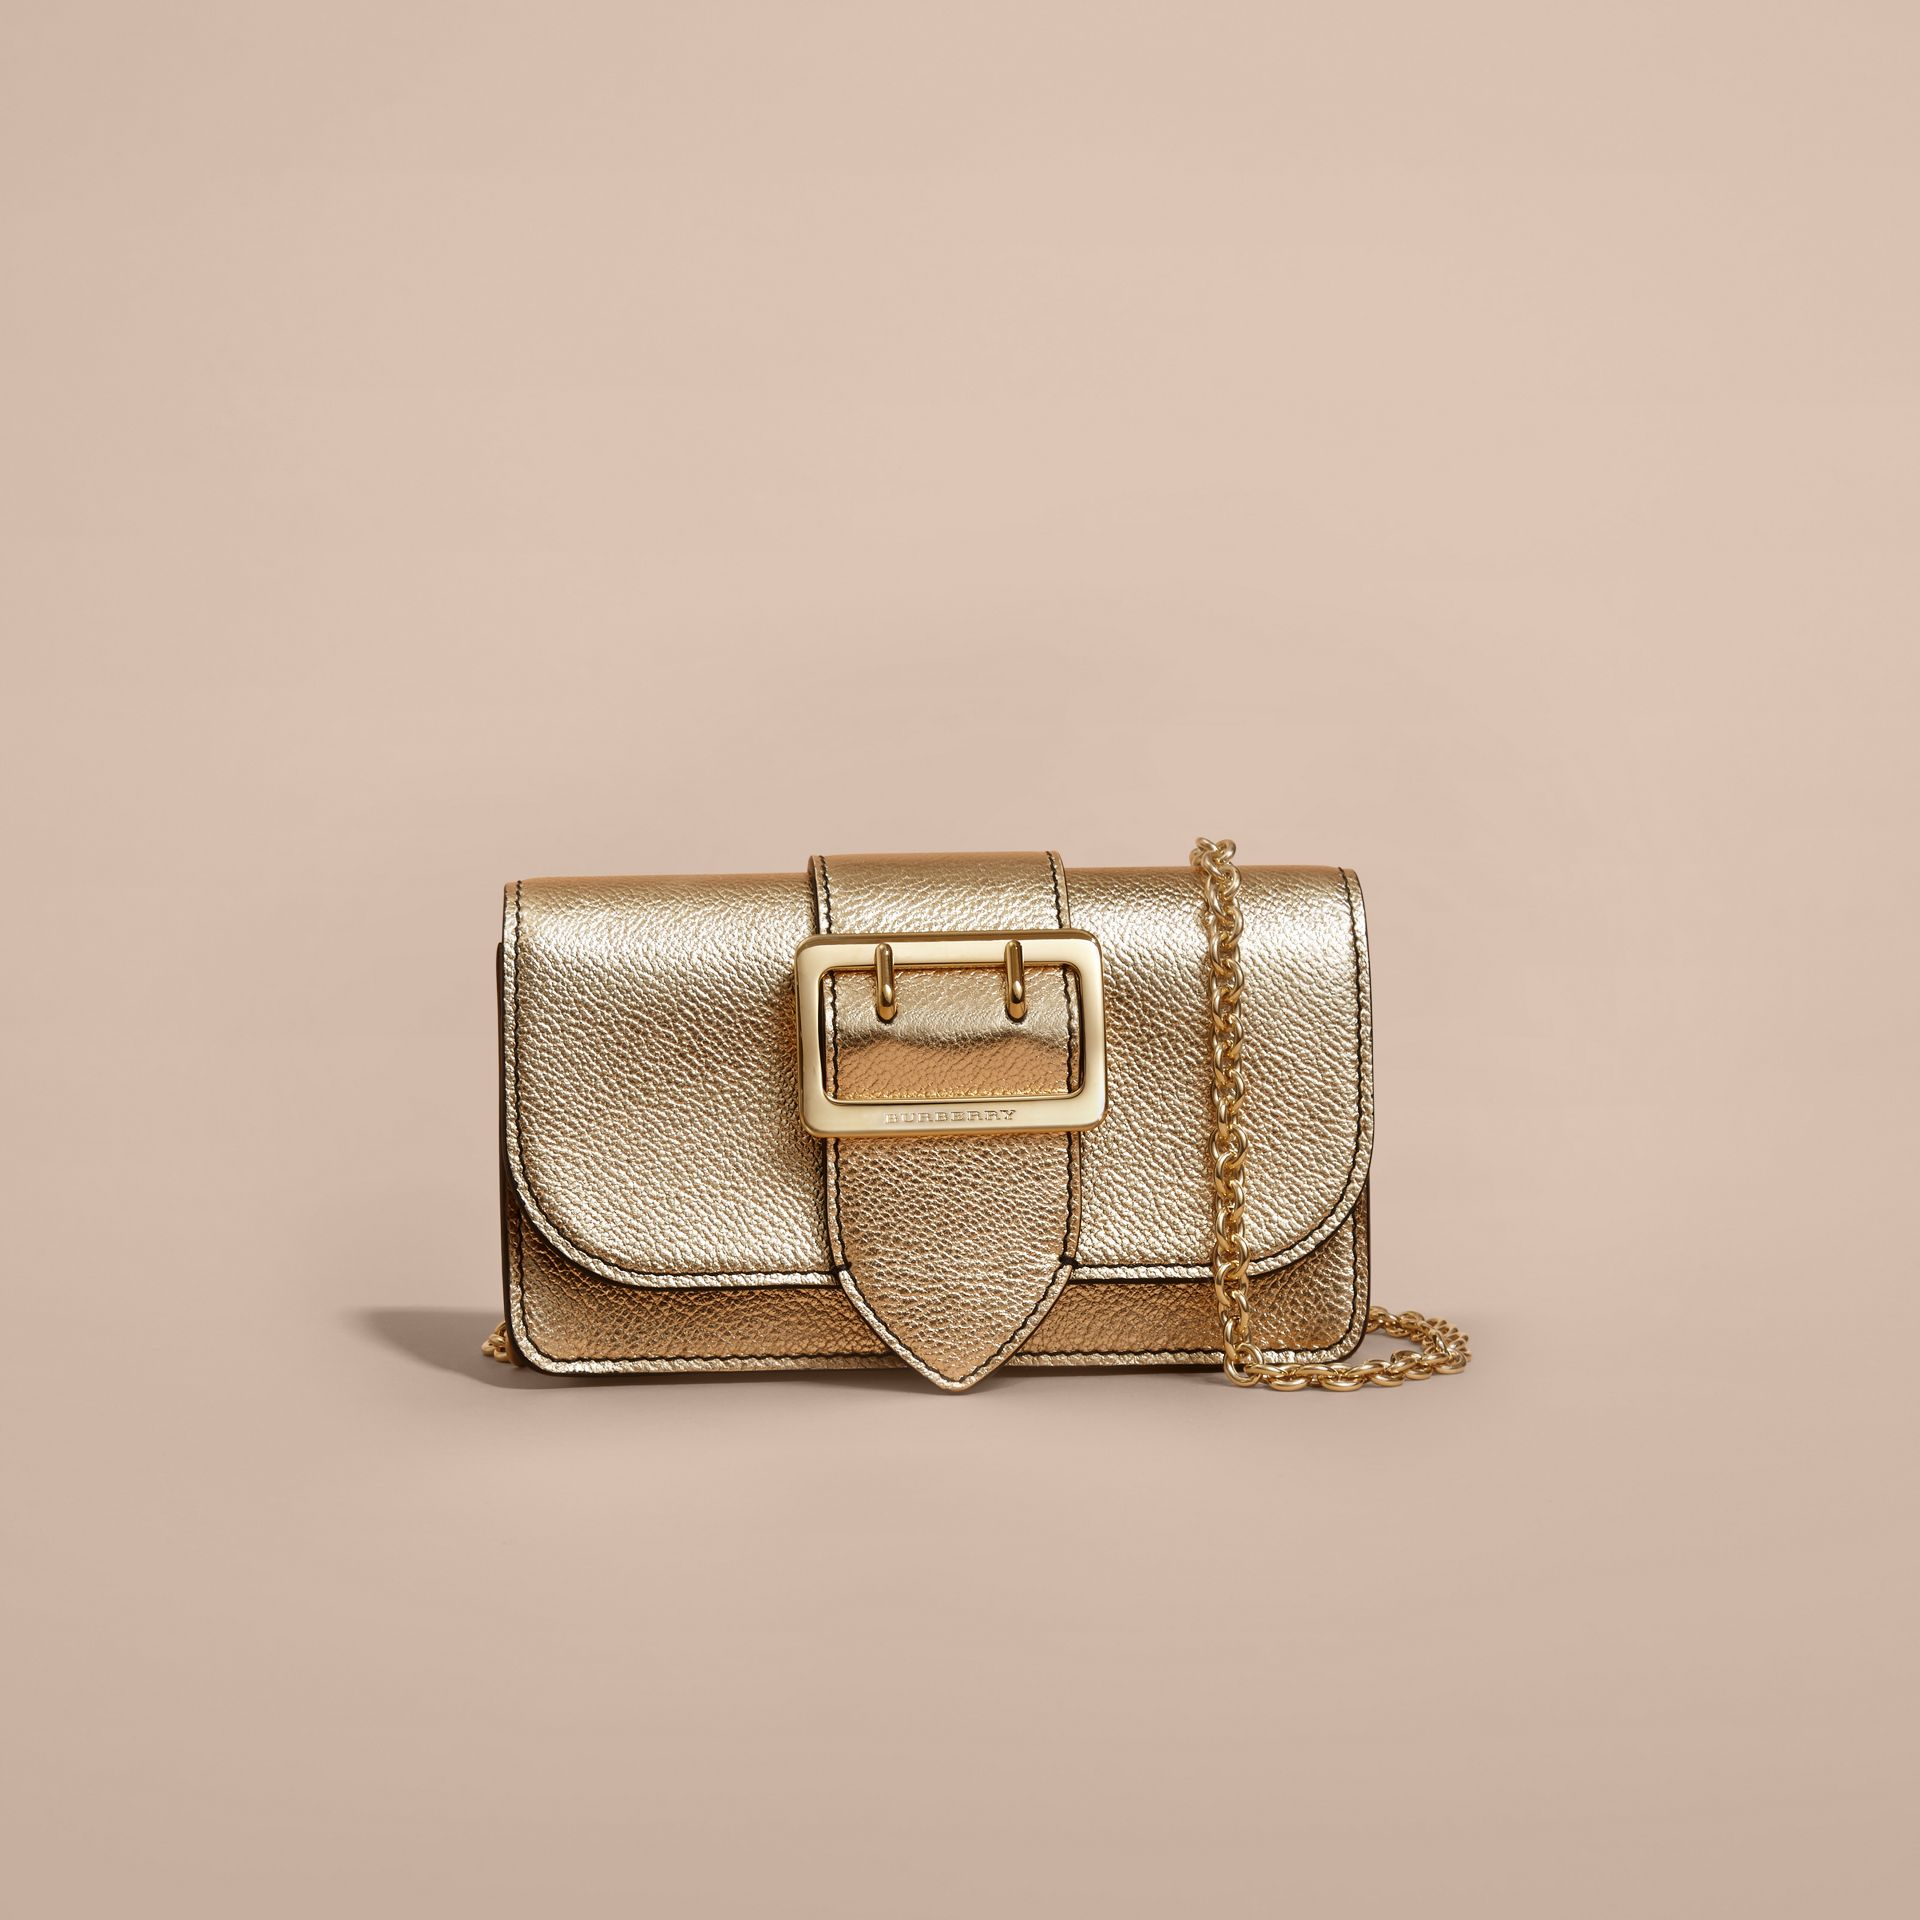 The Mini Buckle Bag in Metallic Grainy Leather in Gold - gallery image 9